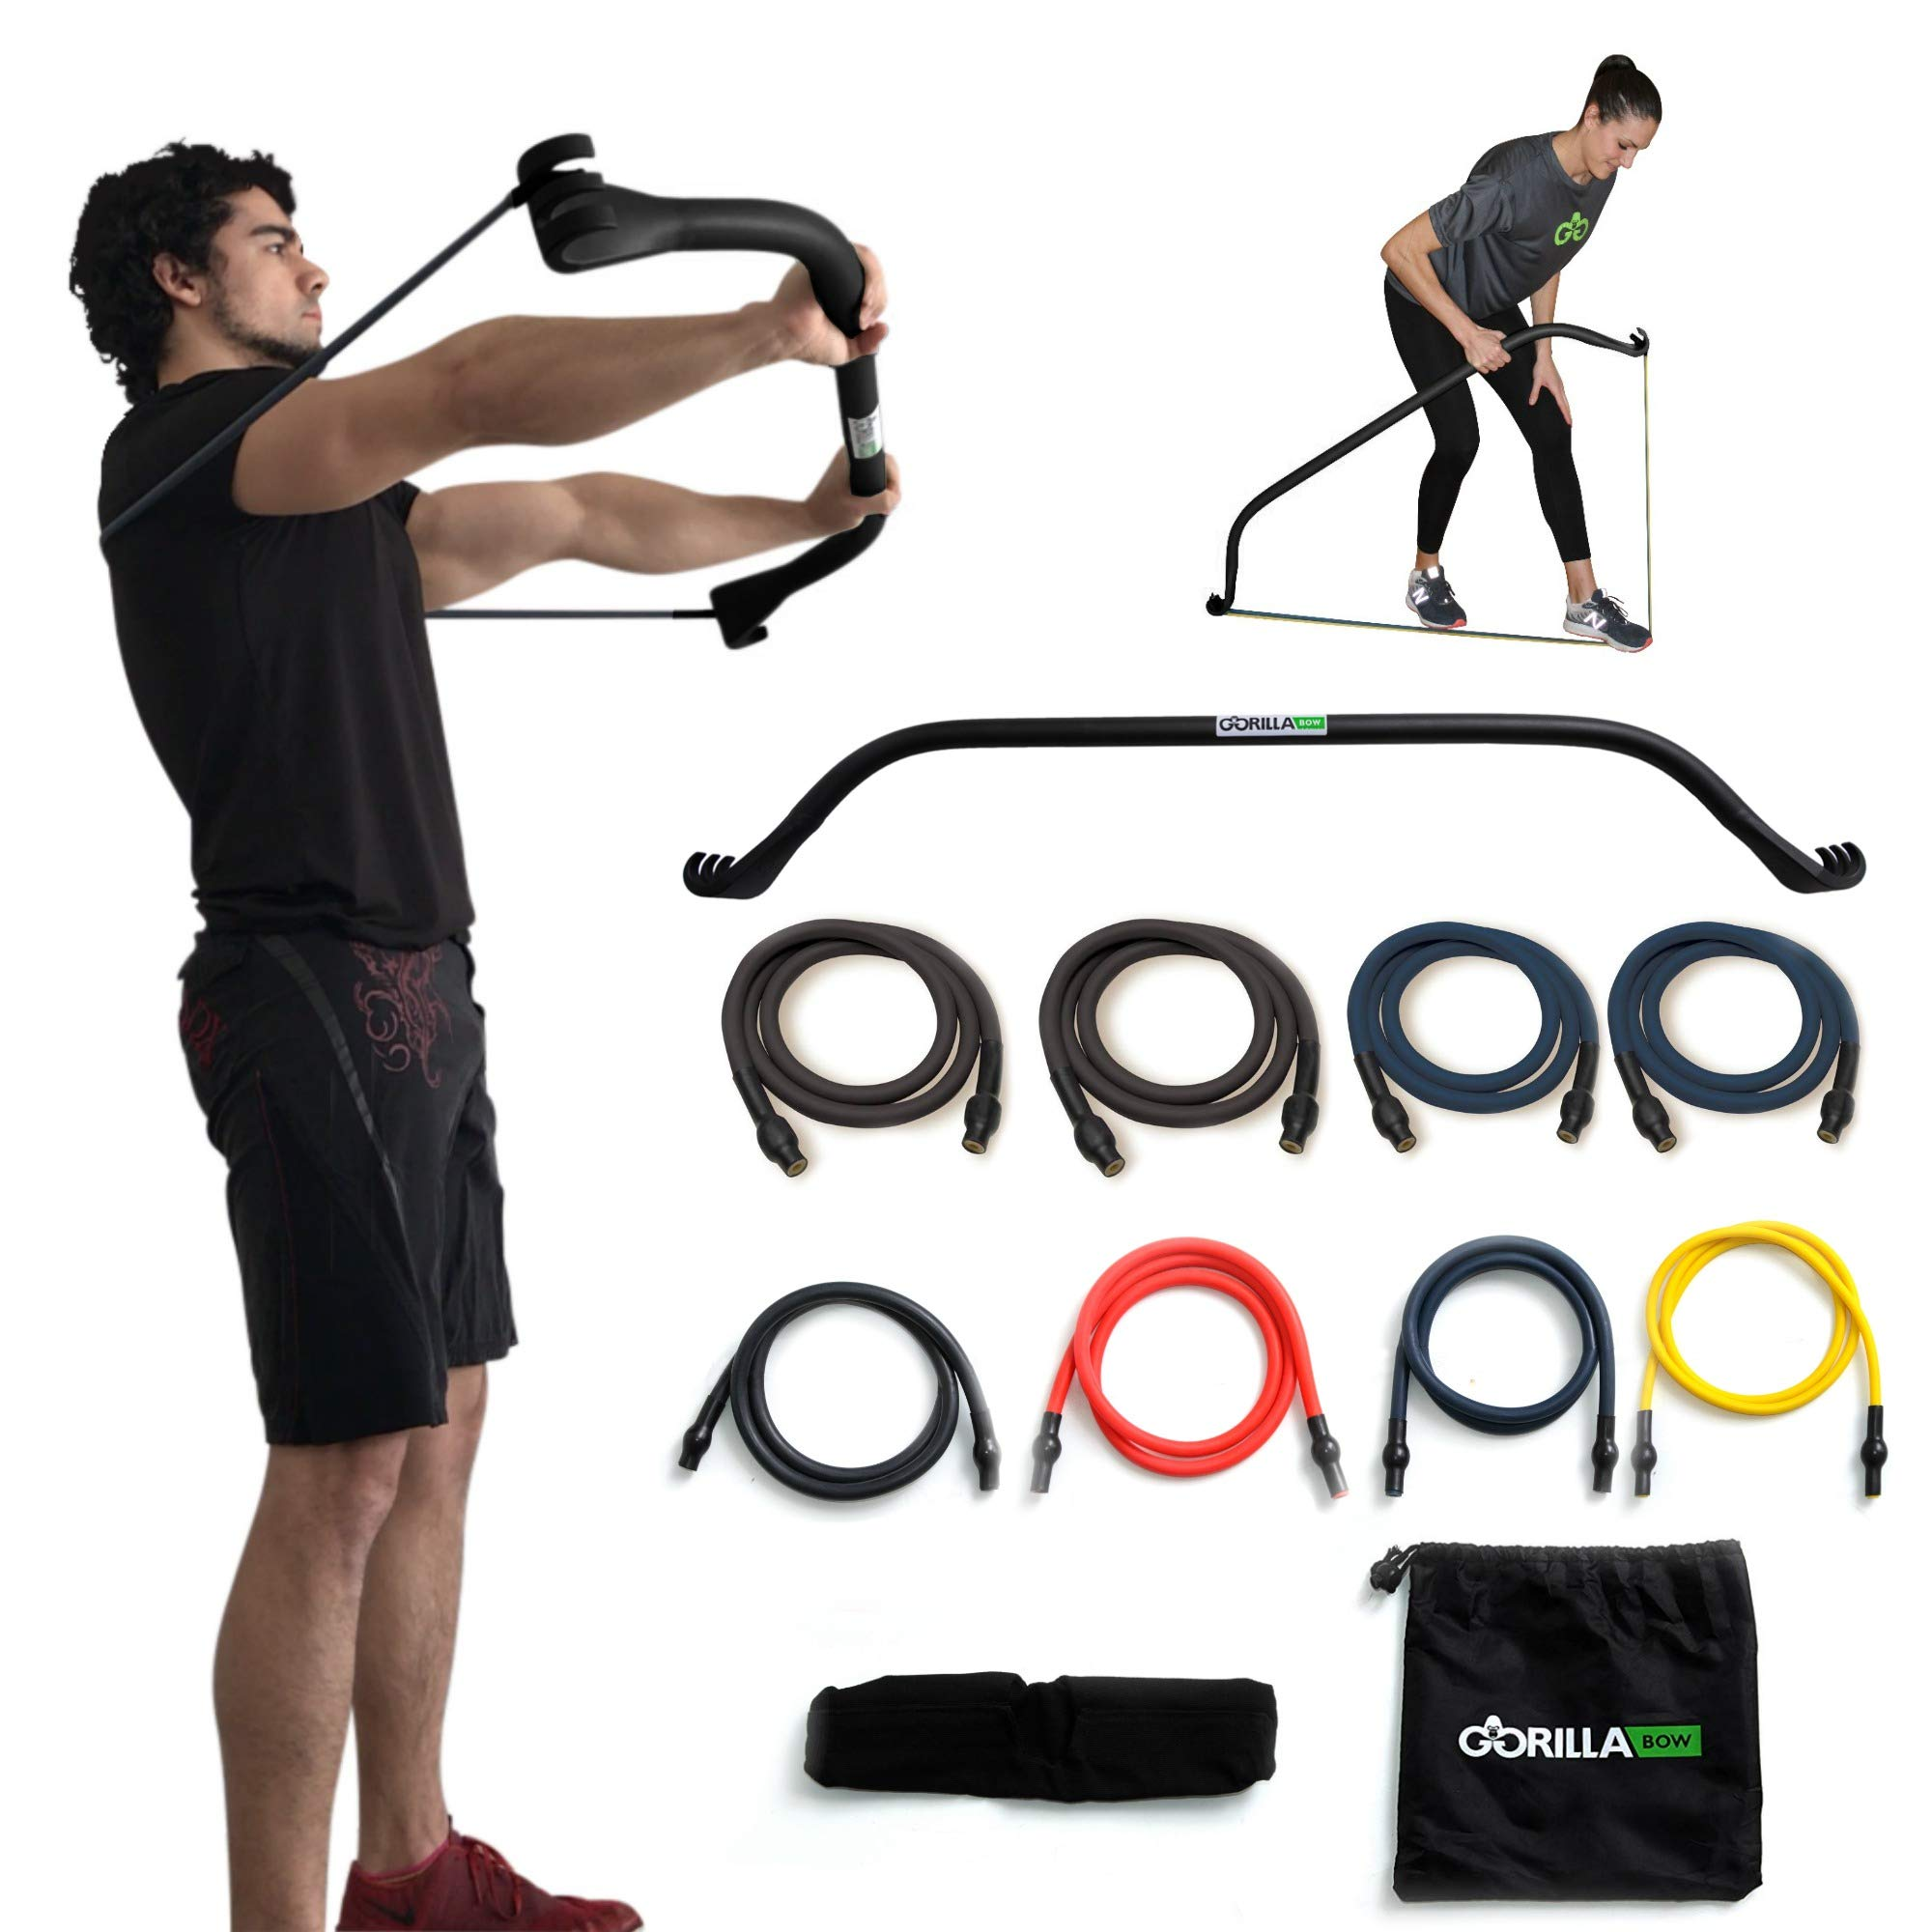 Gorilla Bow Portable Home Gym Resistance Band System - Heavy Set | Weightlifting & HIIT Interval Training Kit | Full Body Workout Equipment (Heavy Set - Black) by Gorilla Fitness (Image #1)